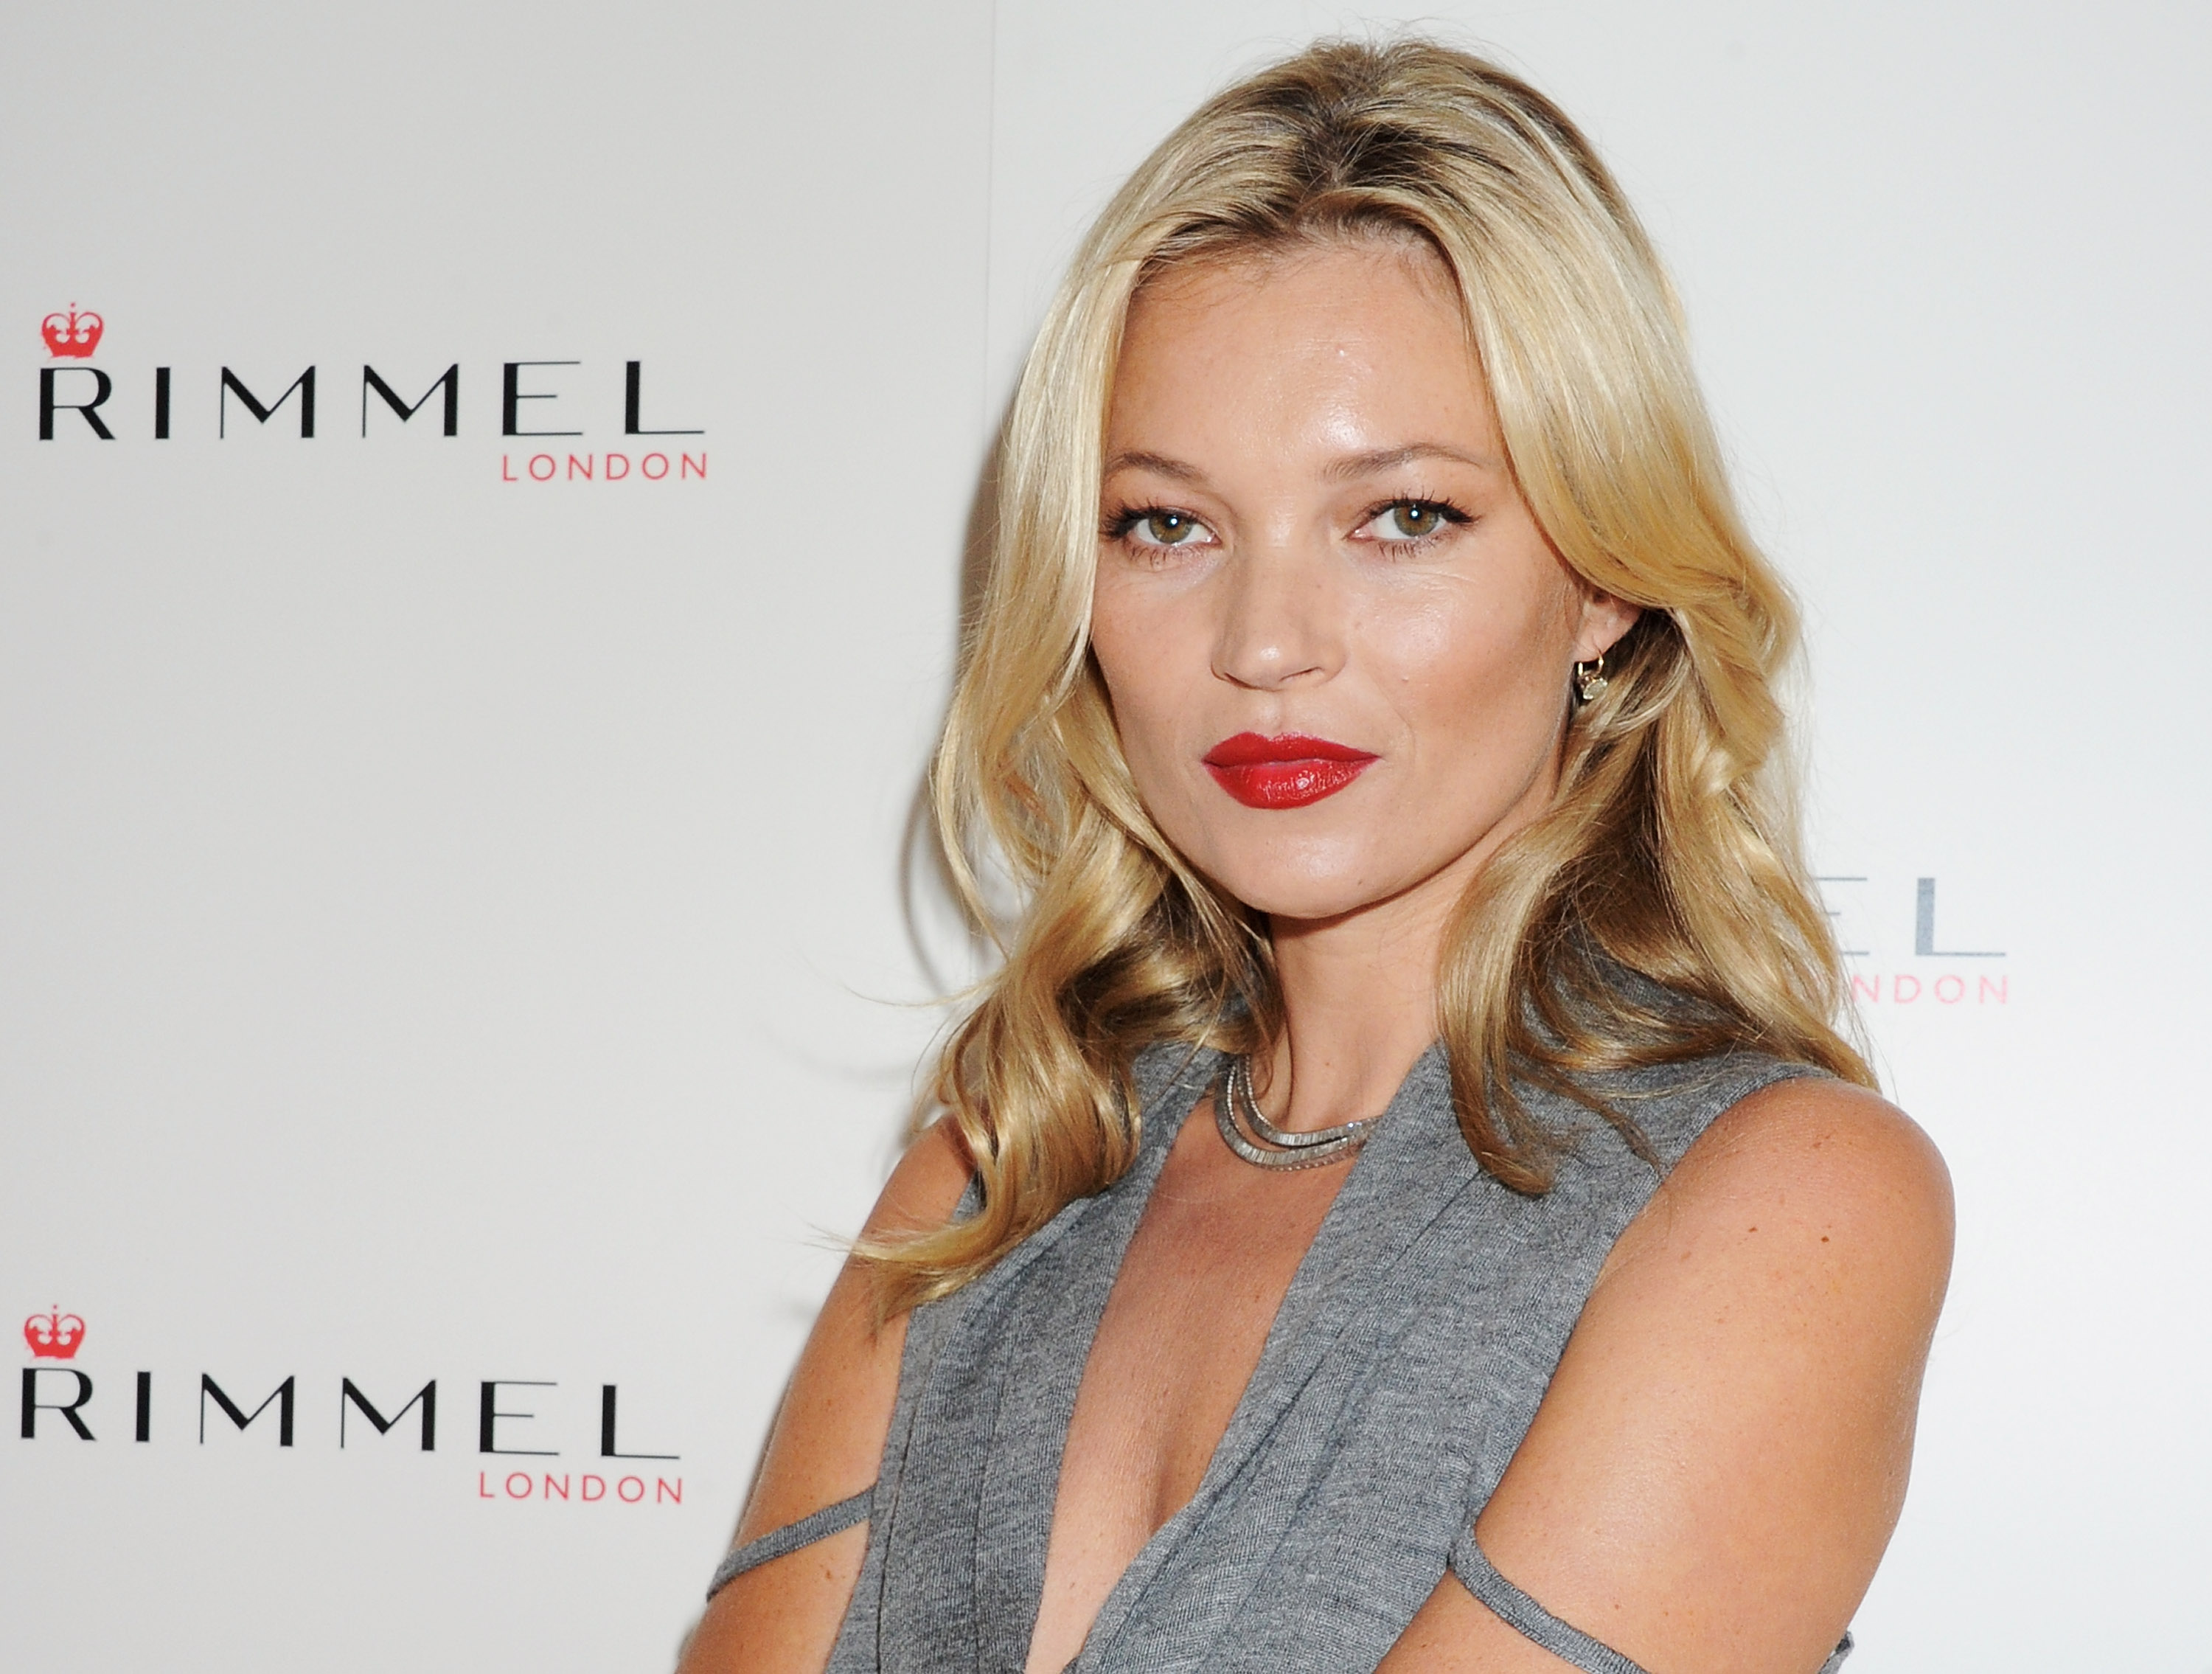 Kate Moss's daughter got her first ad campaign, and she looks *just* like her mom